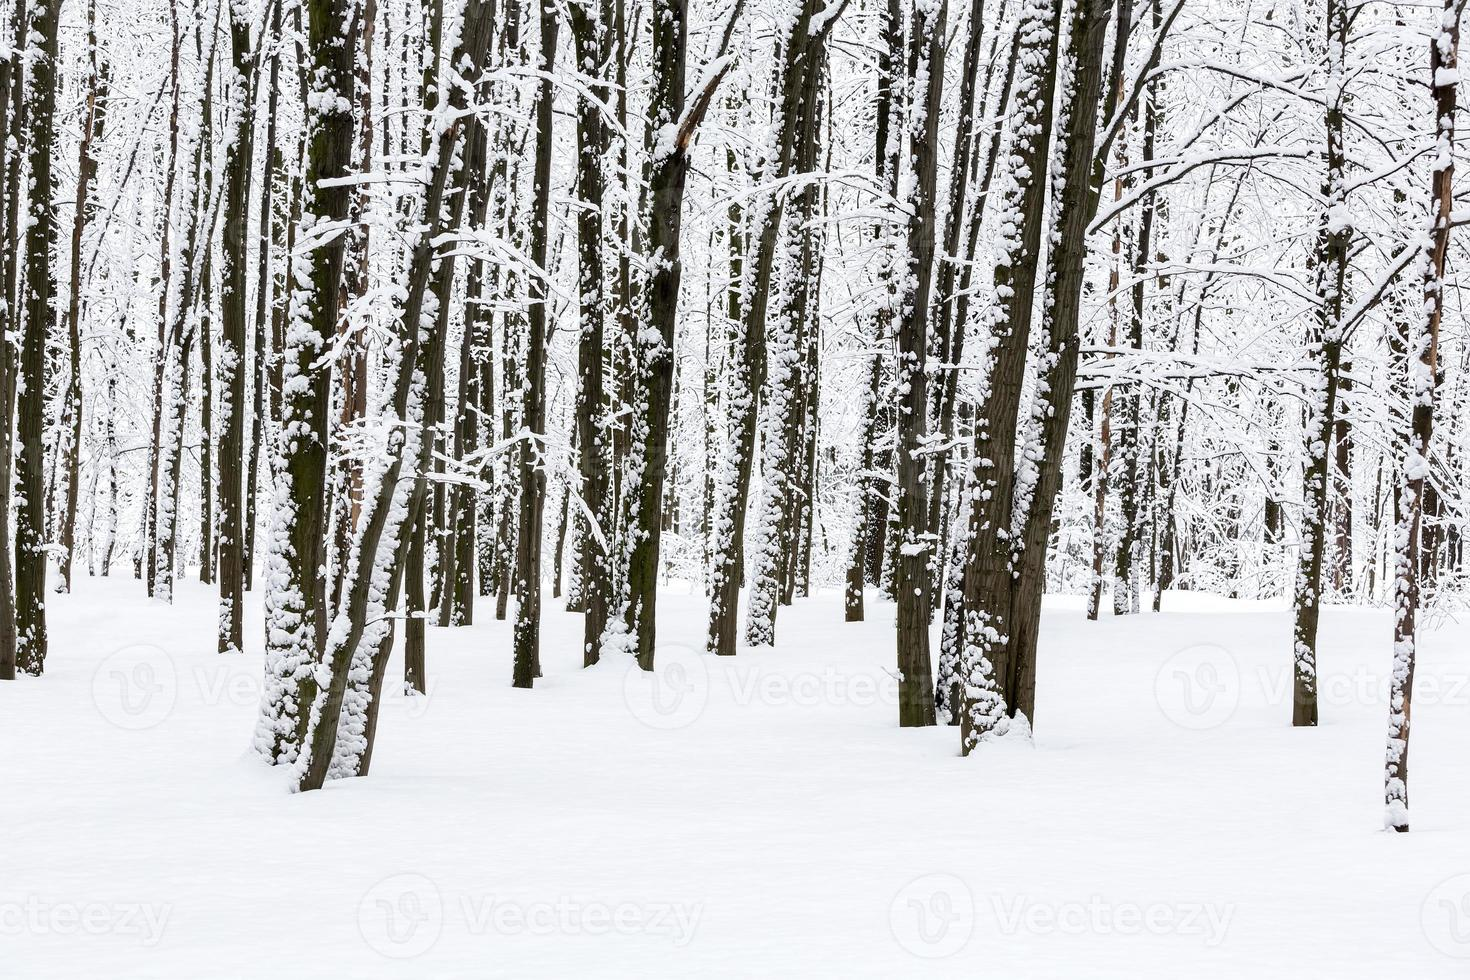 Beech trees in snowy forest photo